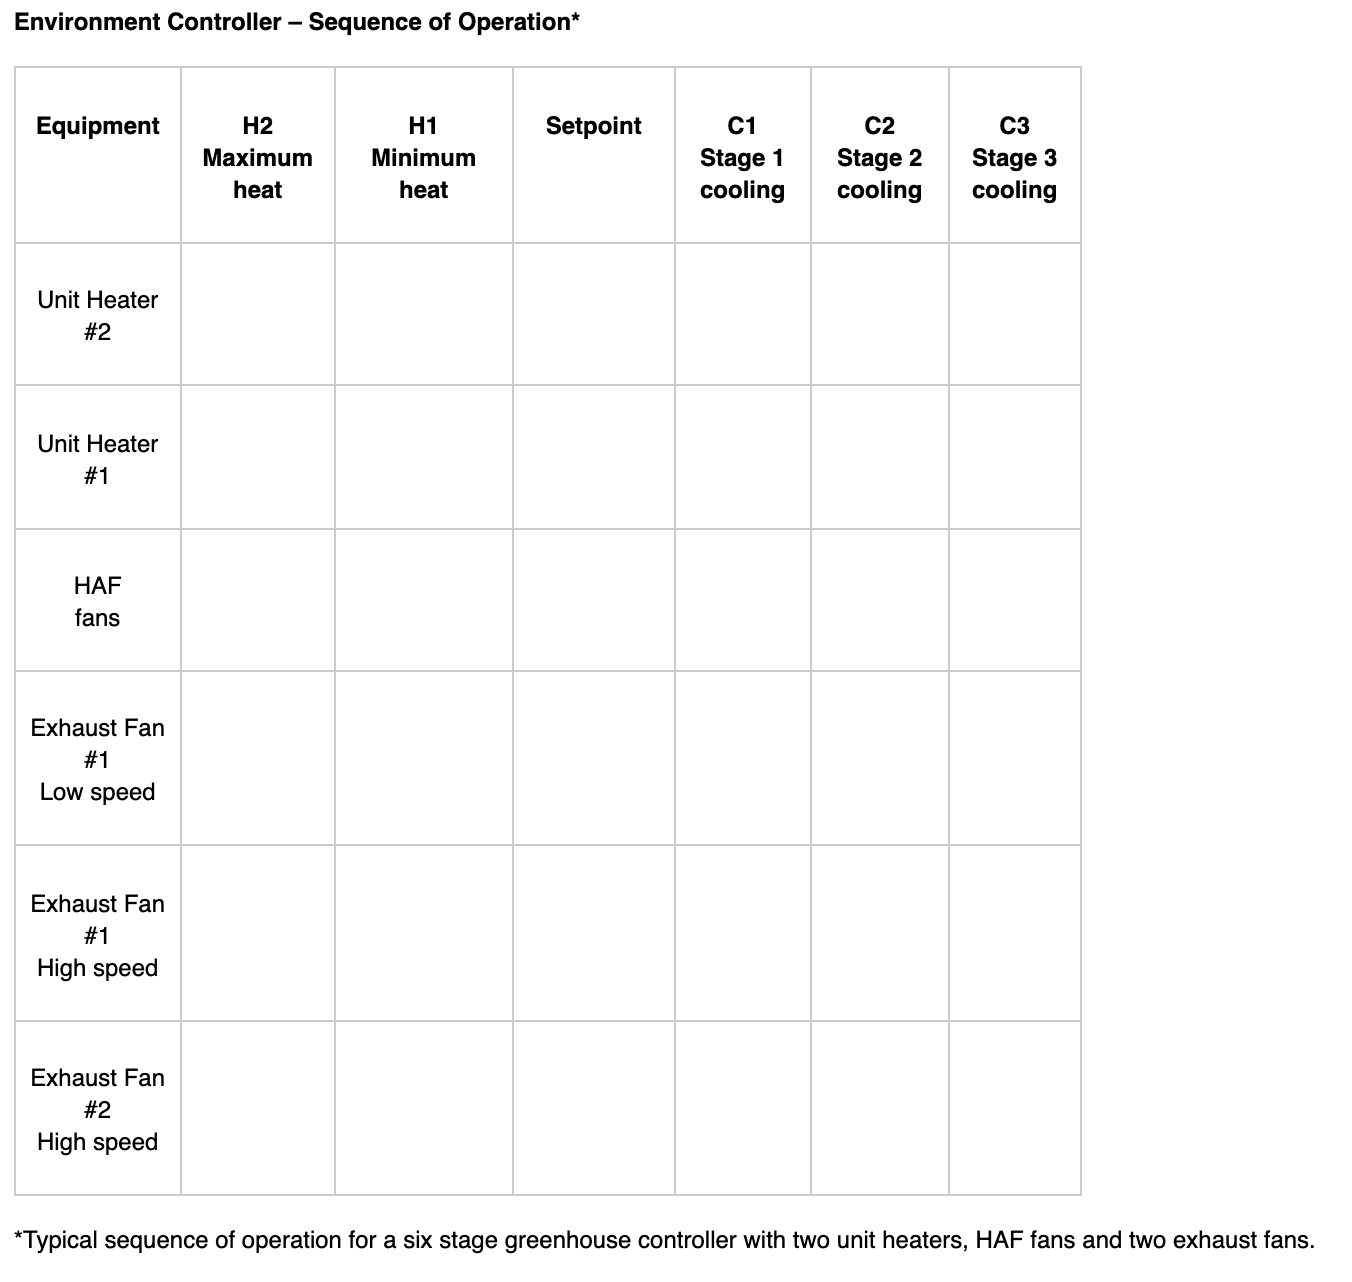 Environment Controller – Sequence of Operation